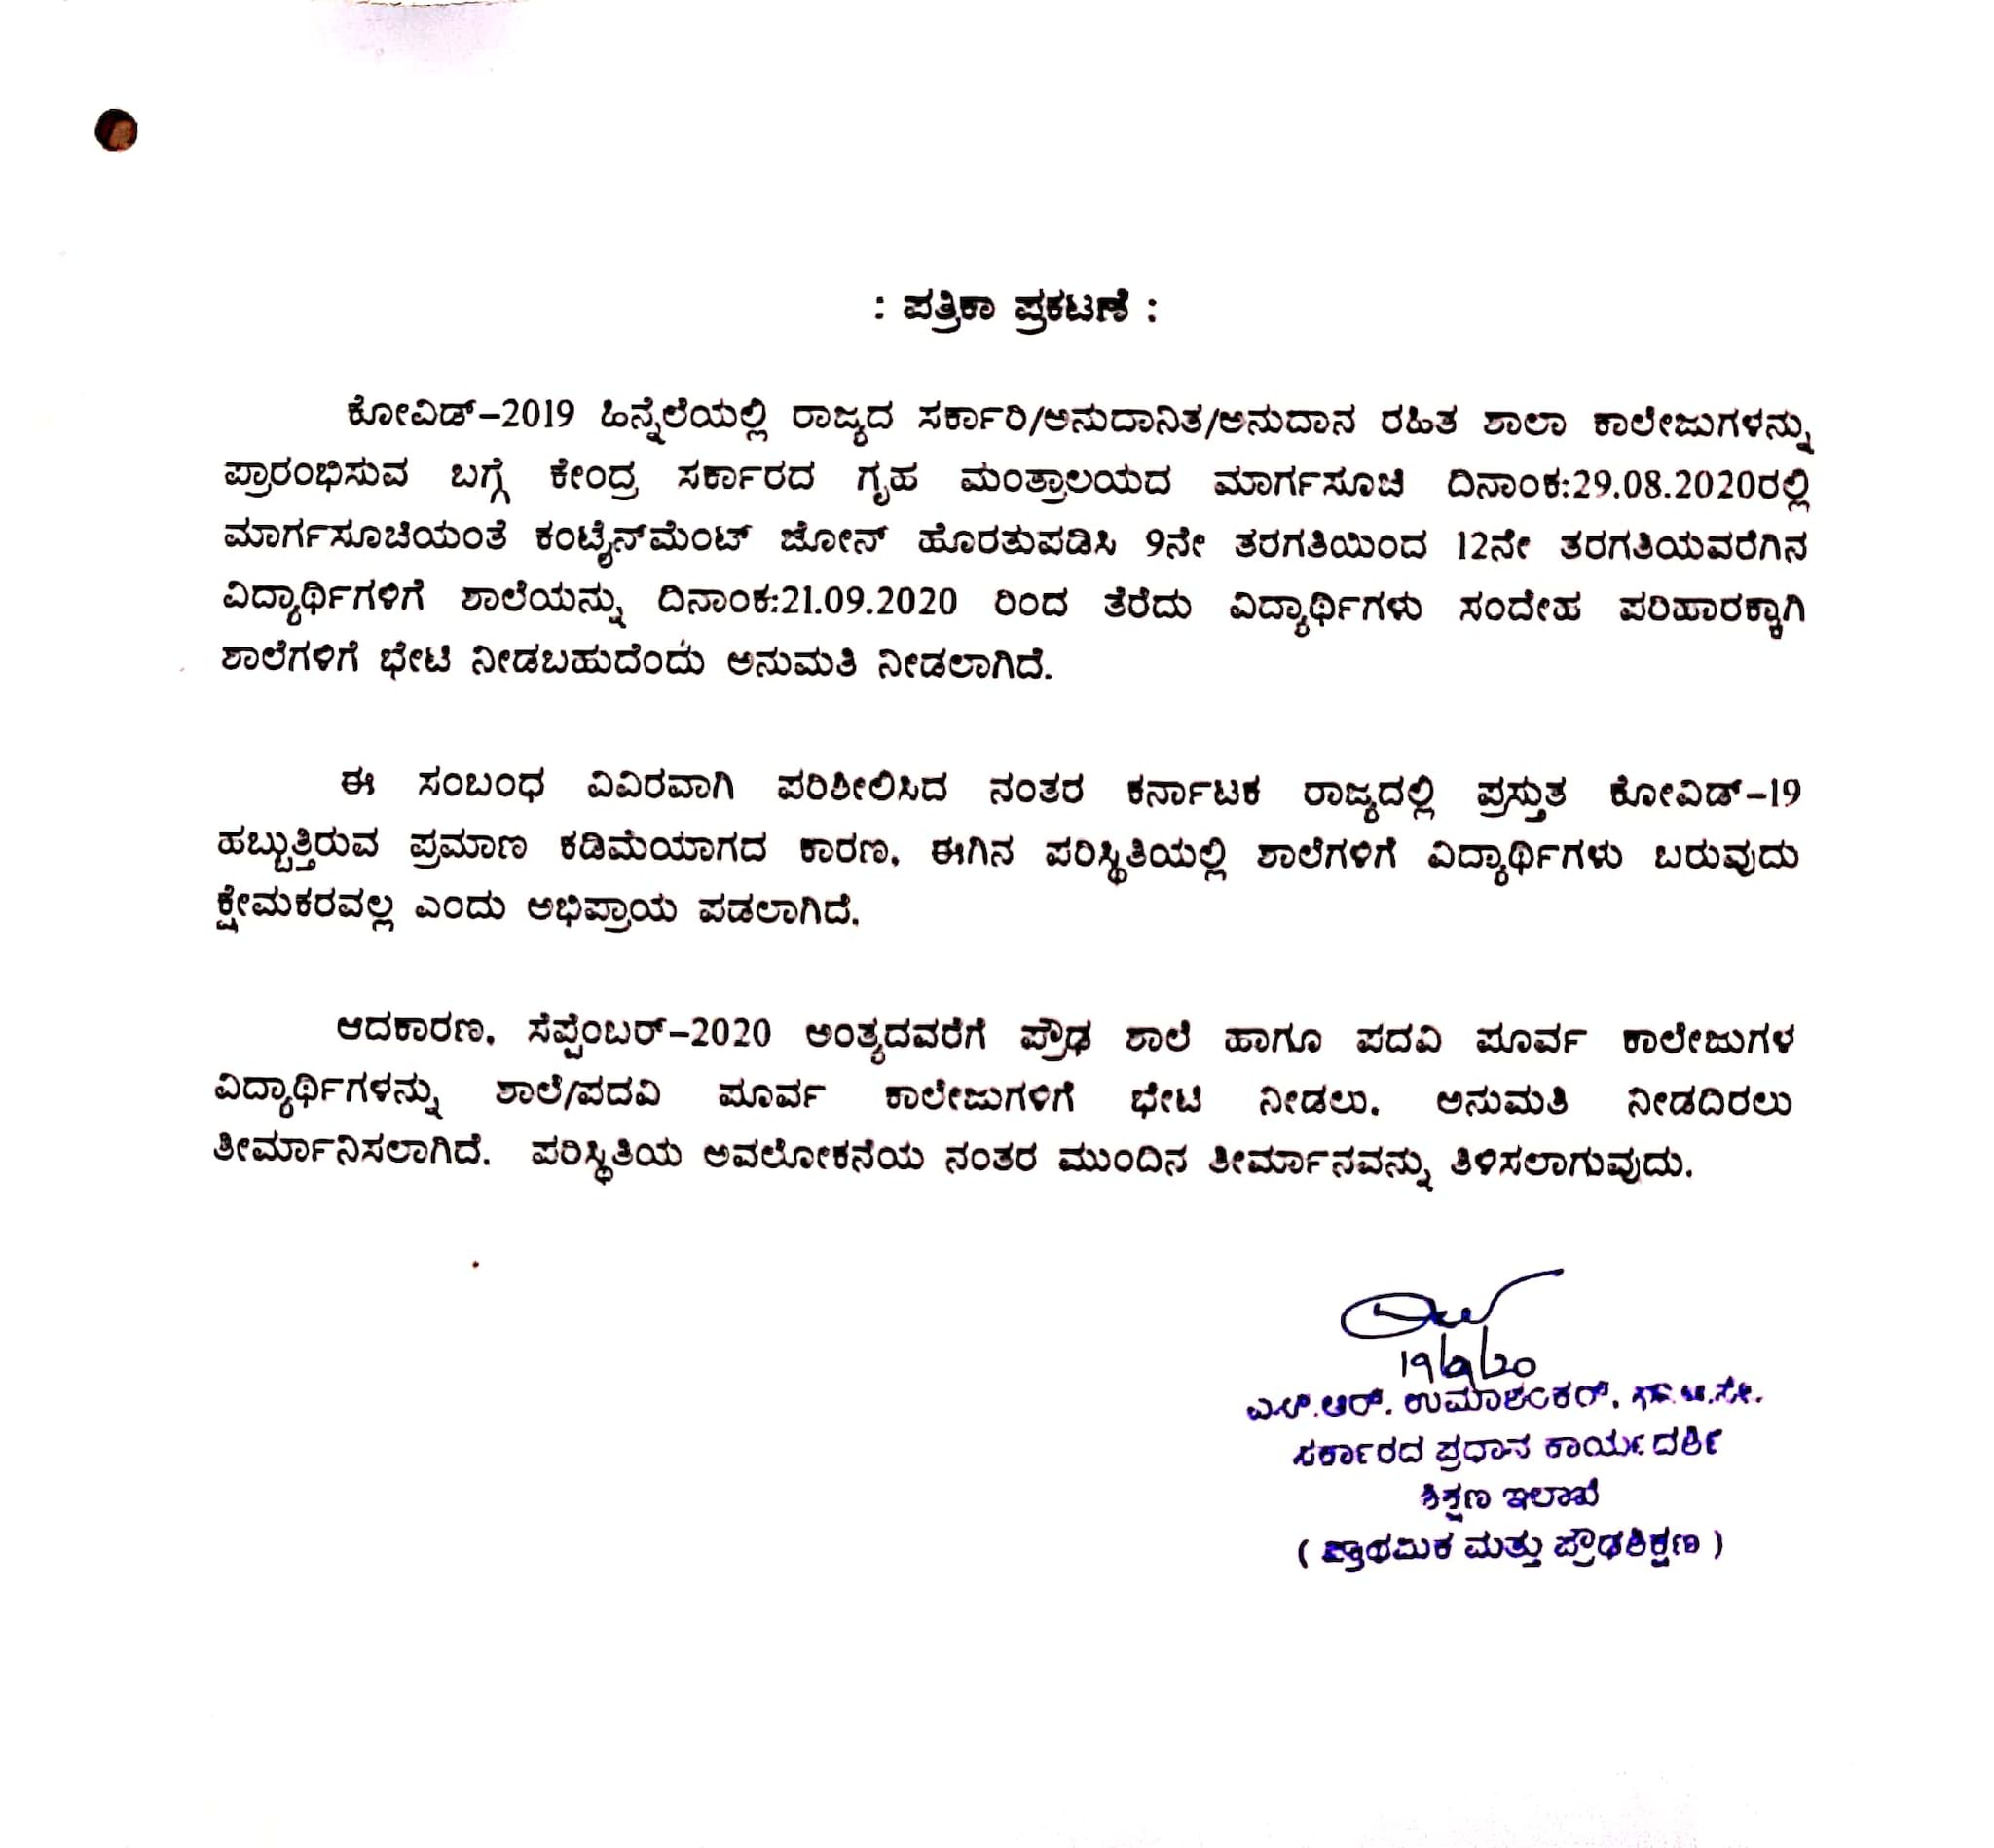 schools will not reopen from sep 21